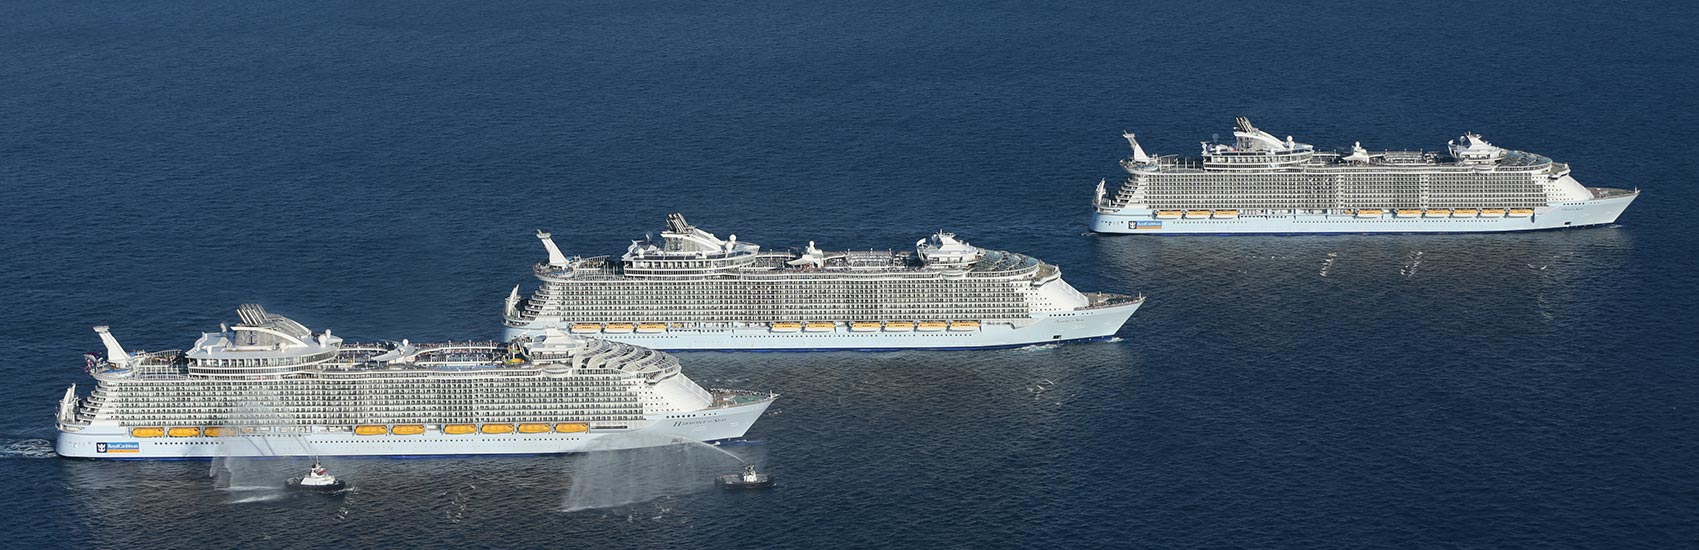 Royal Caribbean's Commitment to Health and Safety 0